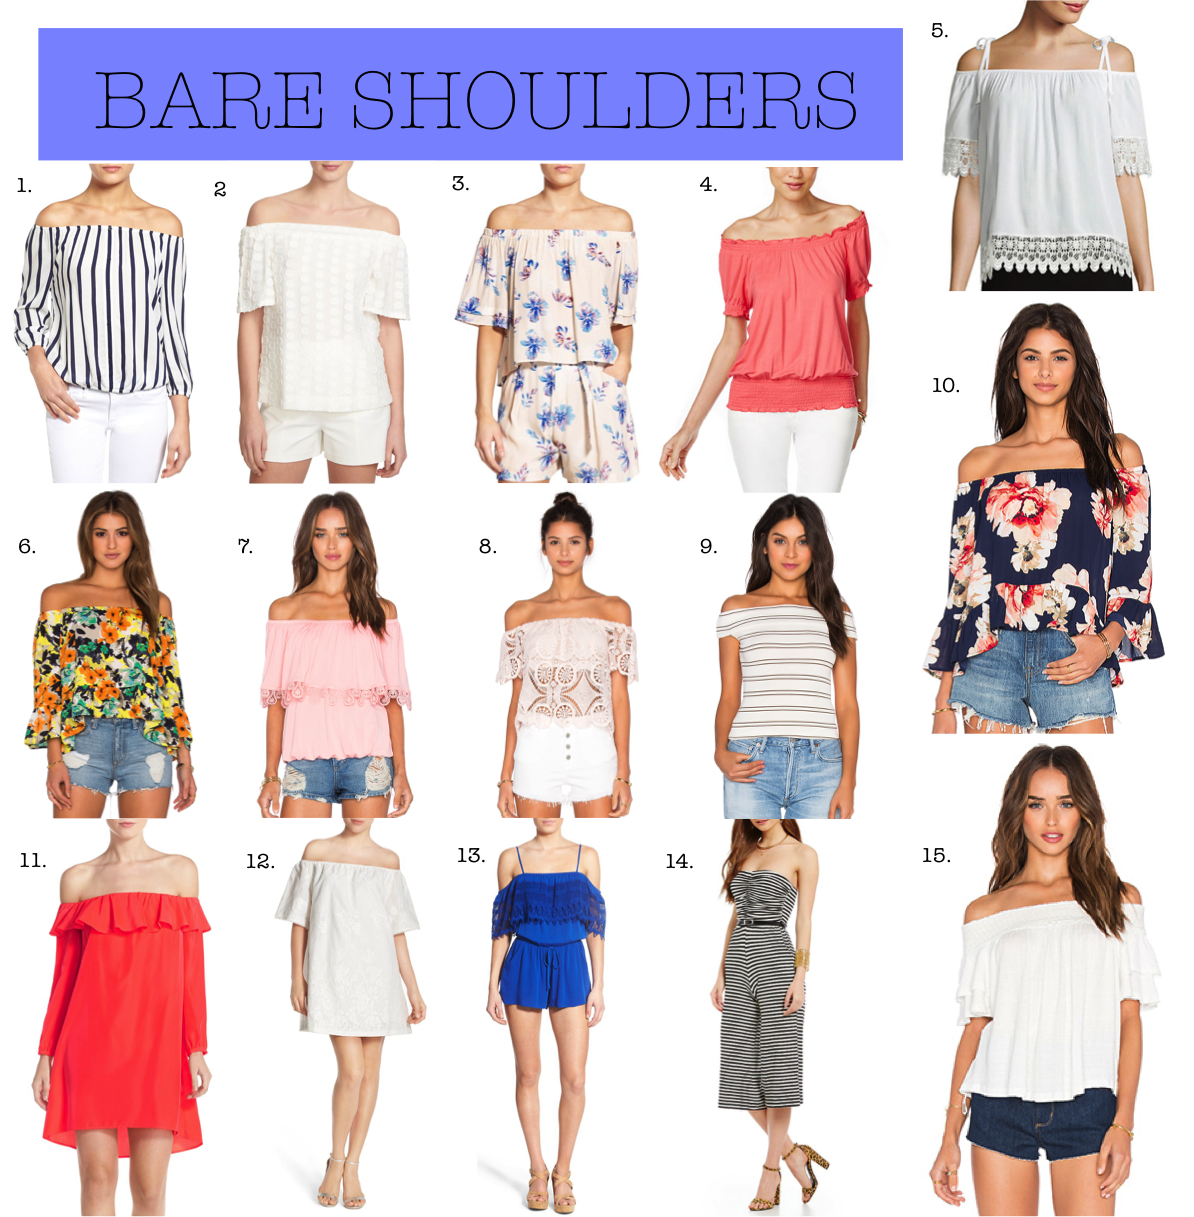 a9a309f3e1a6 MOODY GIRL IN STYLE  Moody Picks  Bare Shoulders